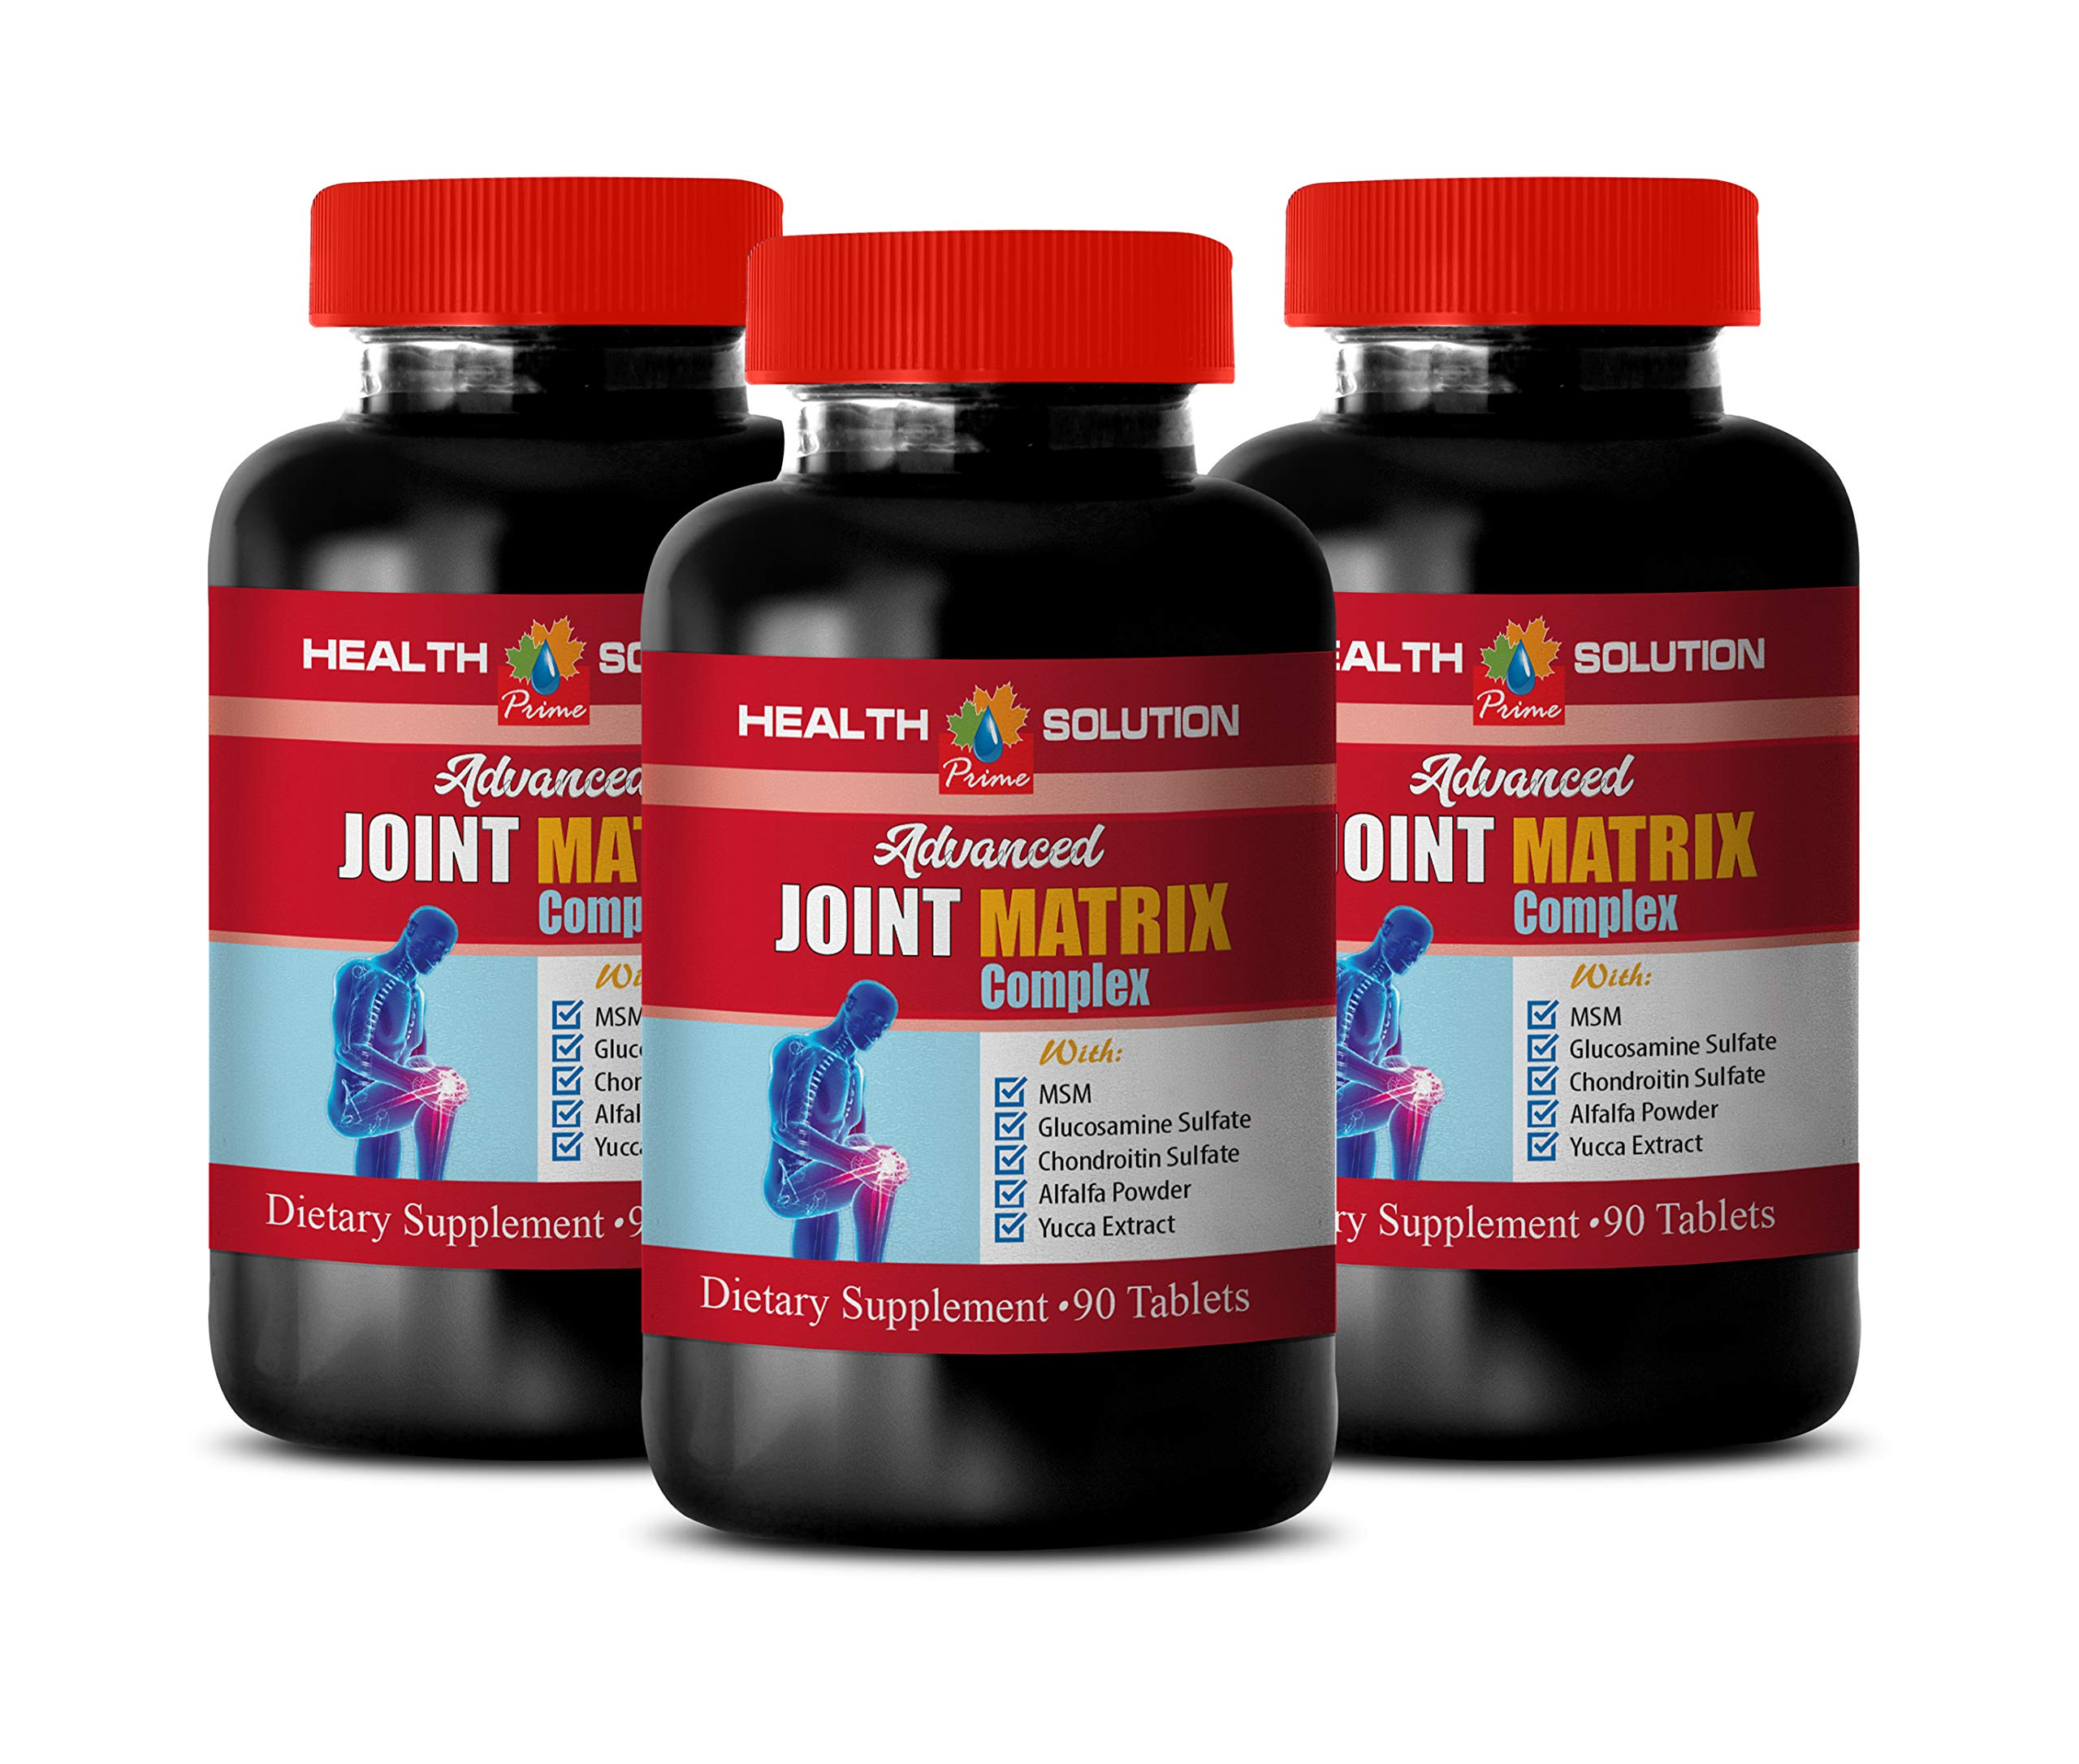 Joint Supplements for Men - Advanced Joint Matrix Complex - glucosamine Capsules for Adults - 3 Bottles 270 Tablets